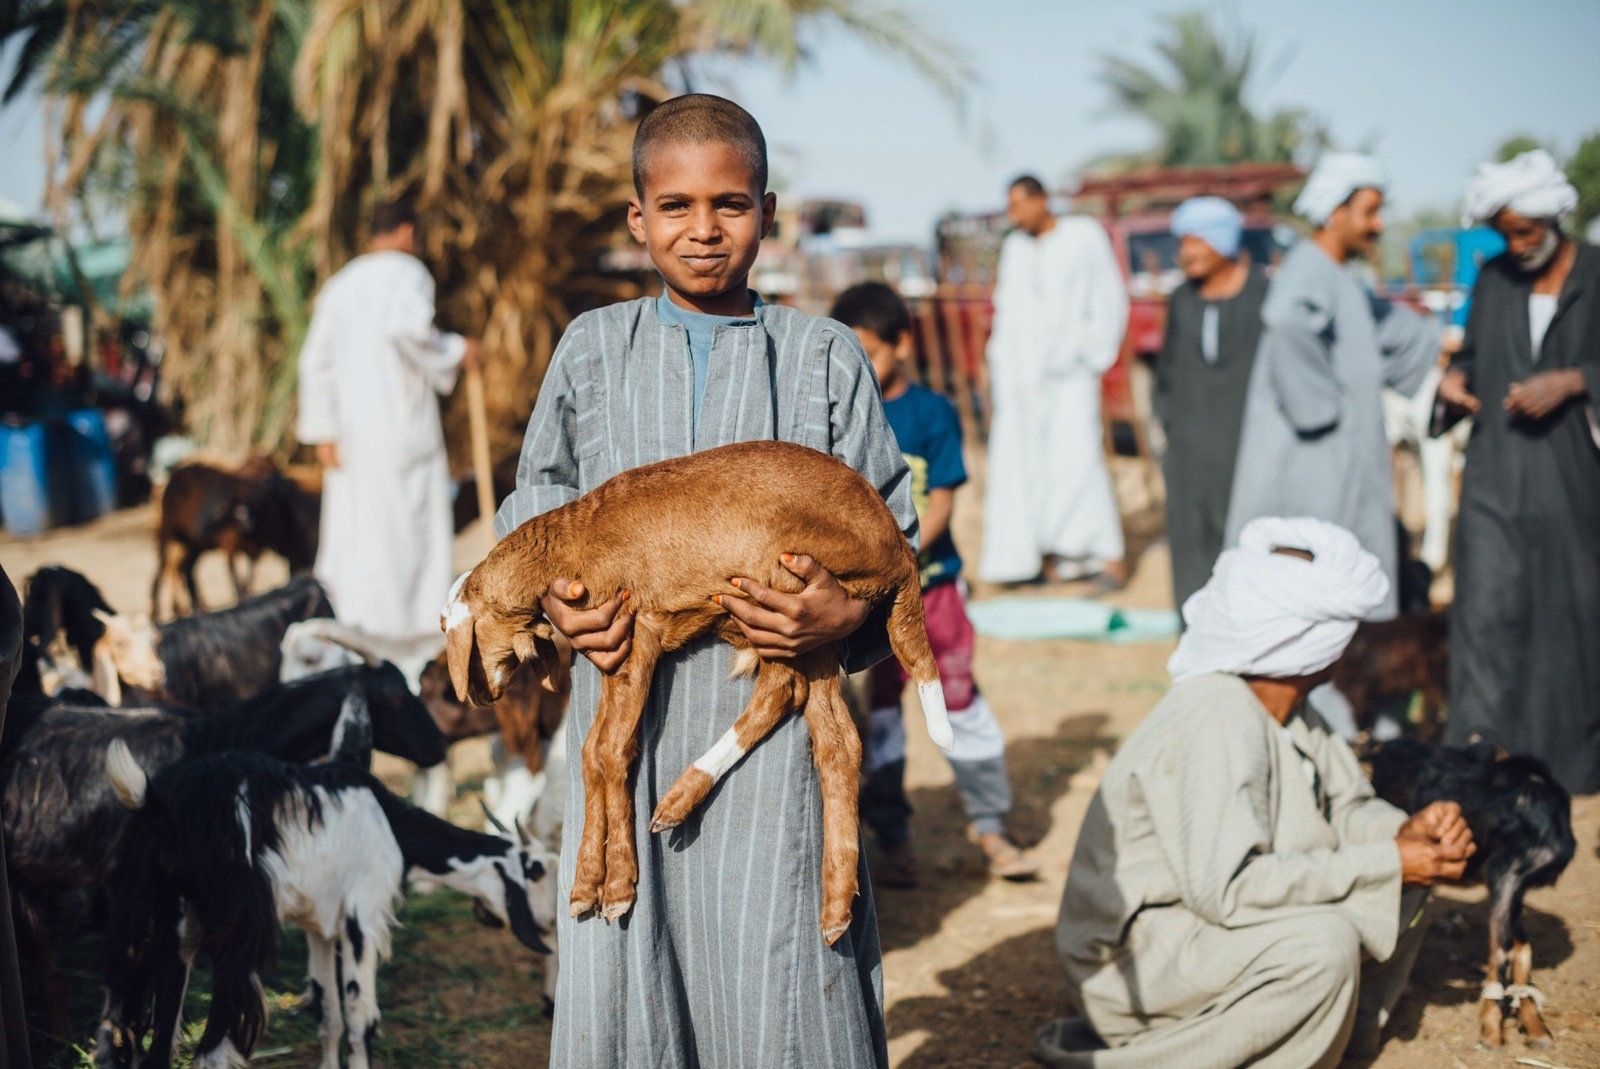 A young boy carries a goat in the Saturday market at Sayala, known as Kalabsha market in Kom Umbo. People usually buy their f